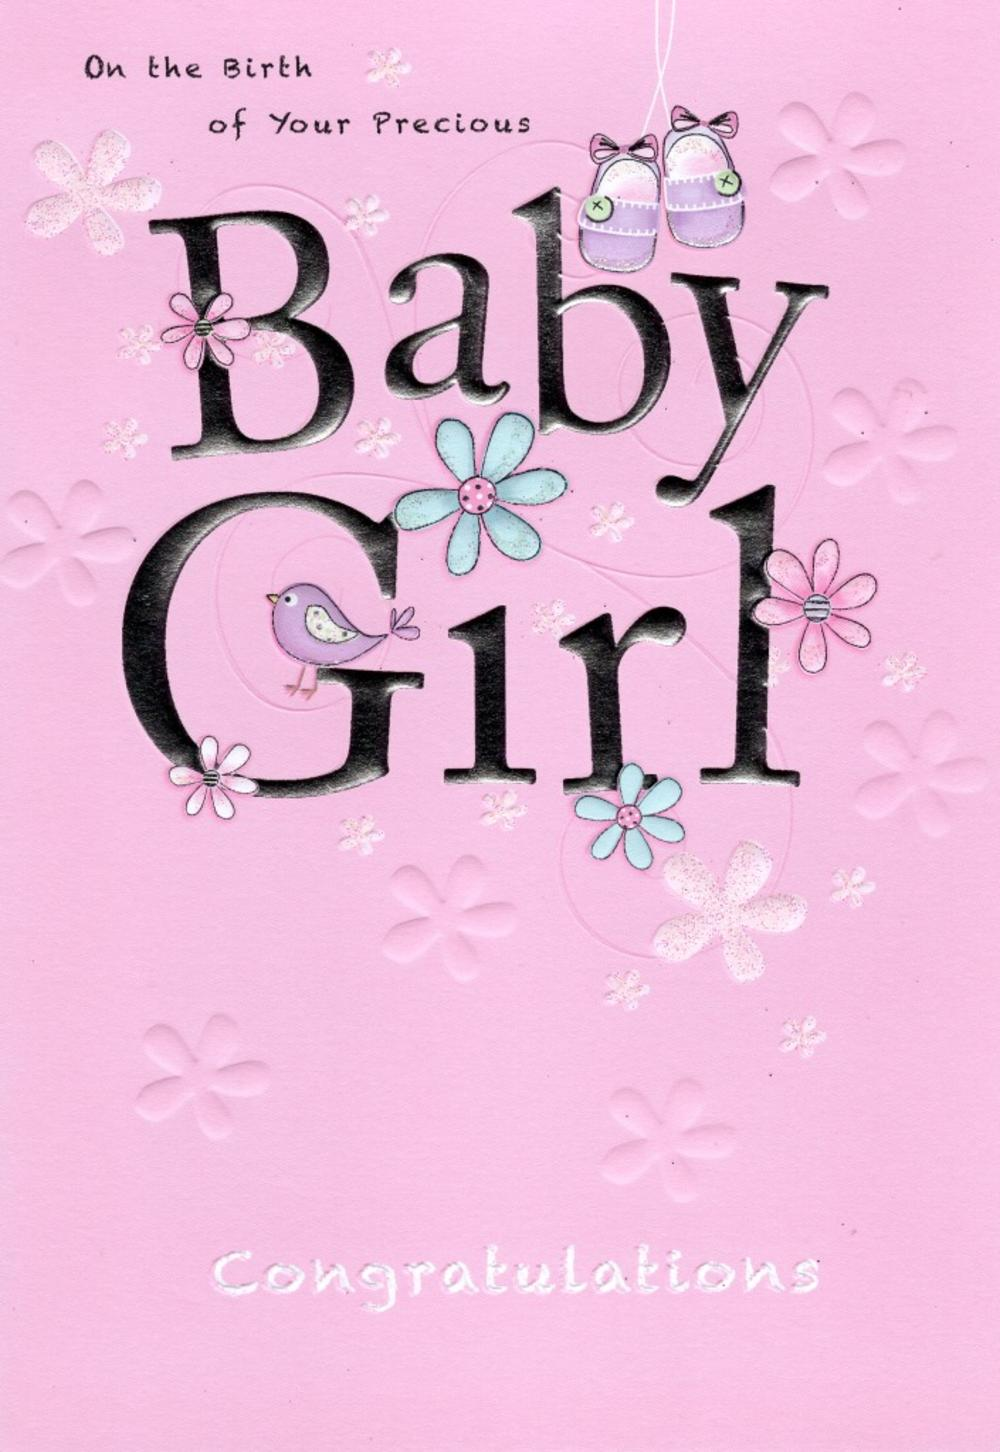 Precious baby girl new baby greeting card cards love kates precious baby girl new baby greeting card kristyandbryce Images